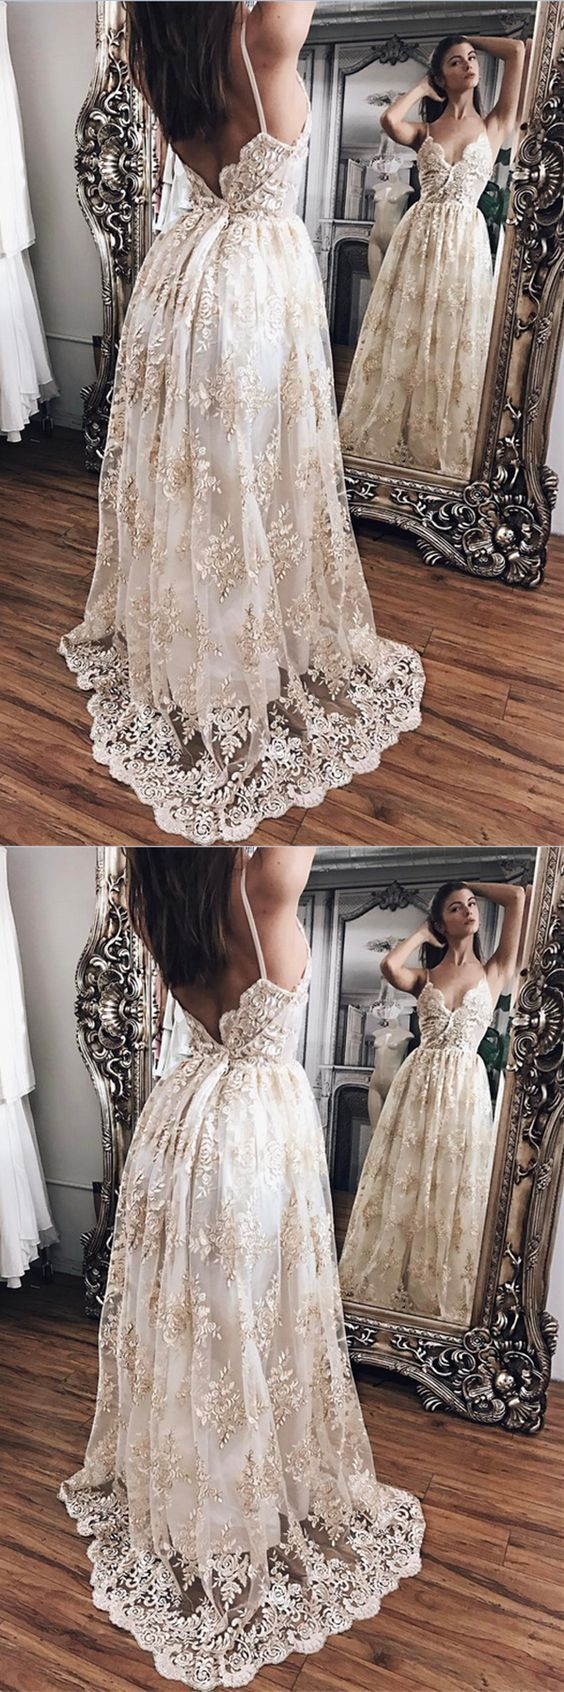 Sexy Prom Gown,Lace Evening Dress,Lace Evening Gowns,Lace Party Gowns